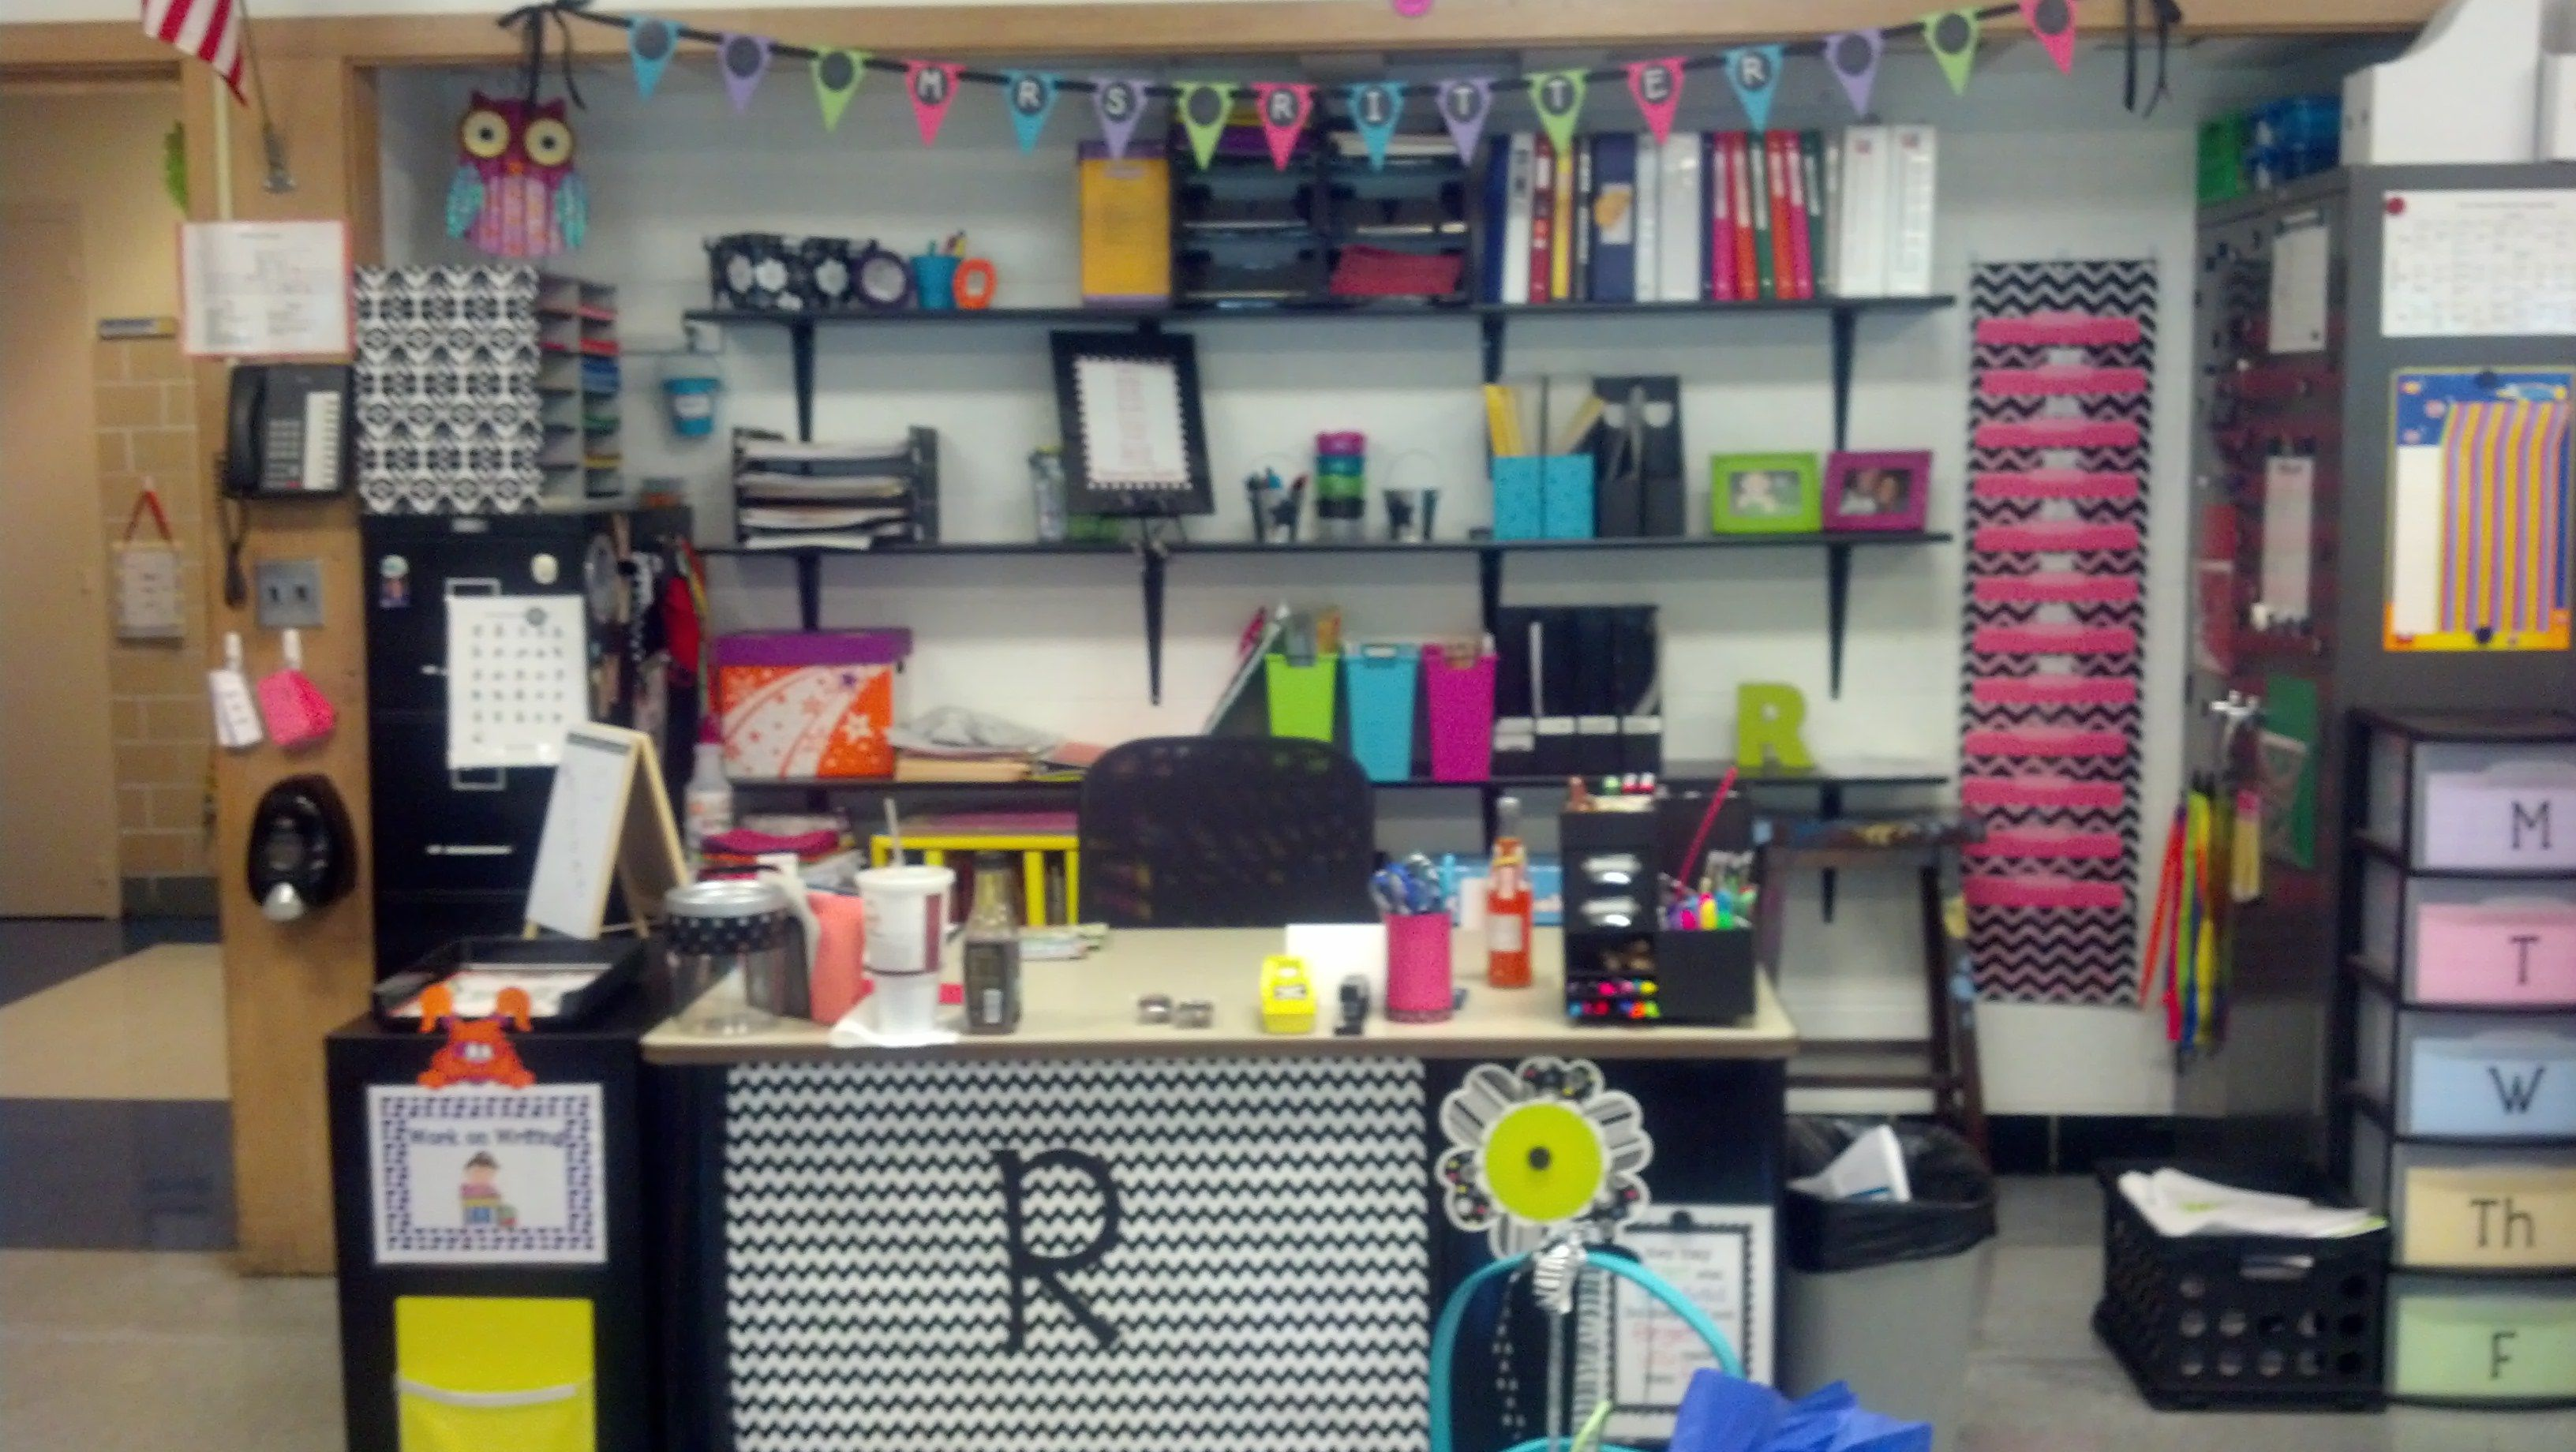 Pin By Beth Warner On Teacher Stuff For My Little Teacher Mrs Ritter Teacher Desk Areas Teacher Desk Organization Classroom Arrangement